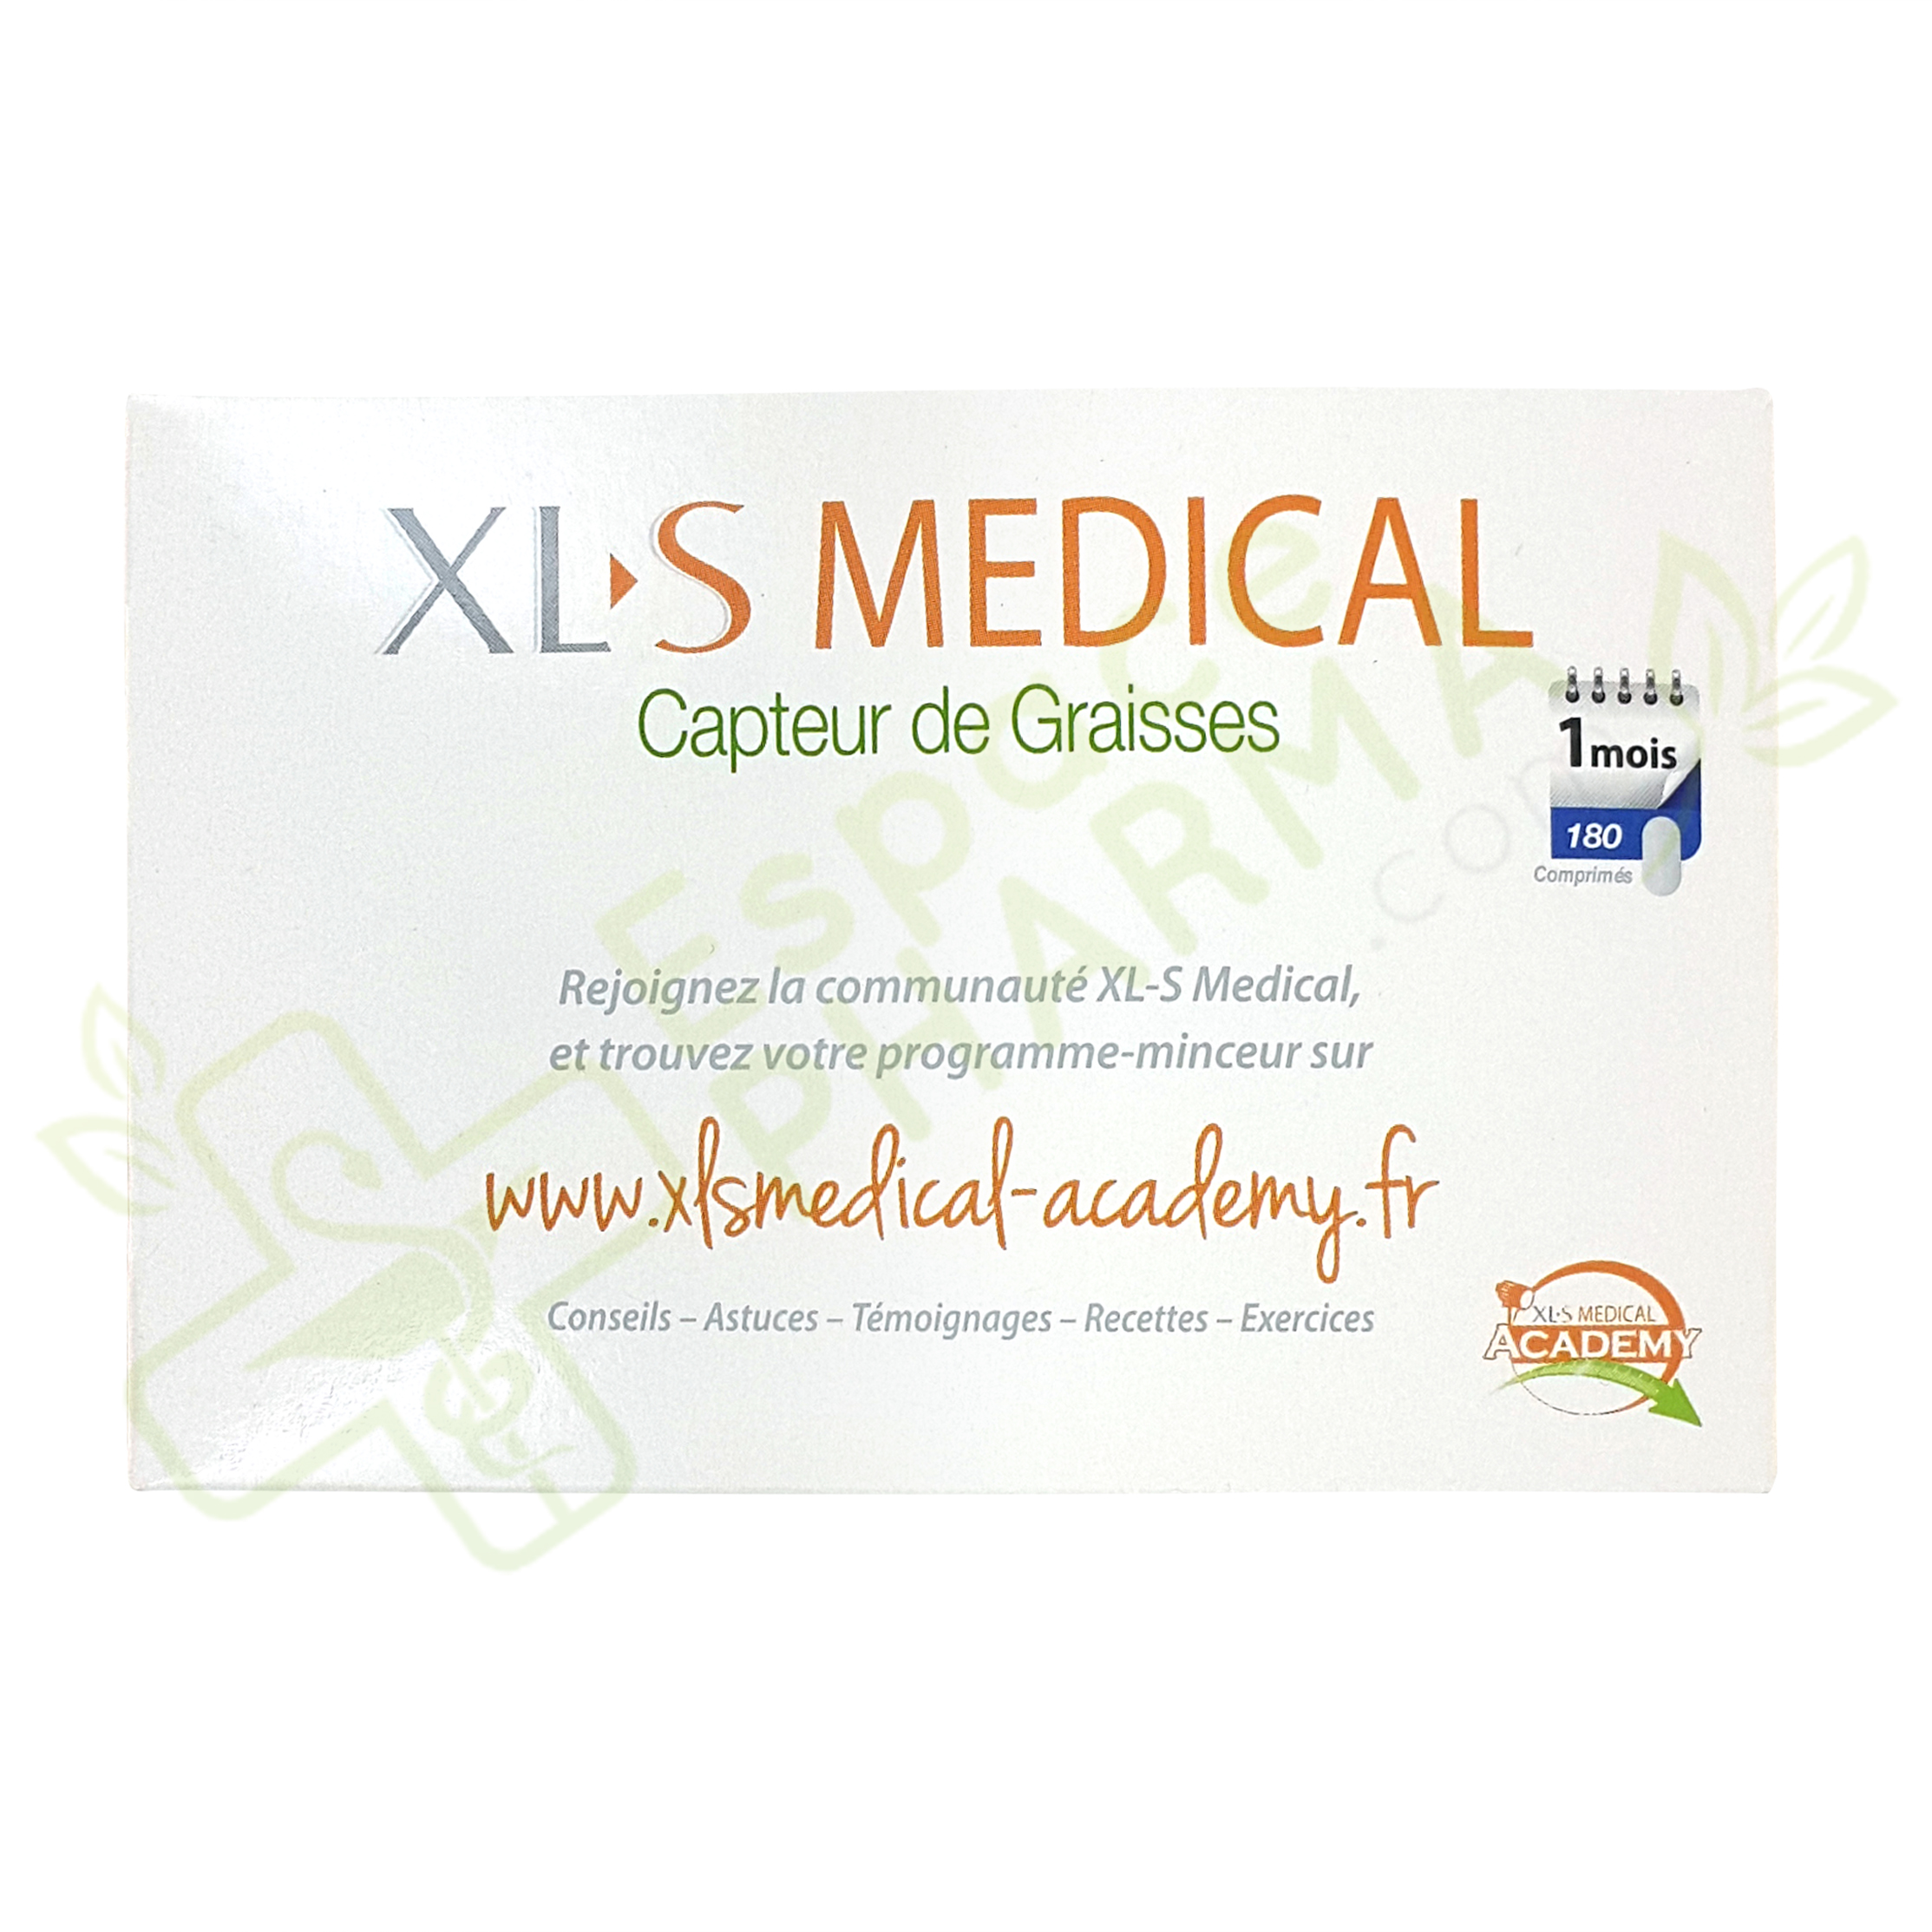 Regime artichaut teleshopping inscription goldex stars - Xls medical capteur de graisse prix ...